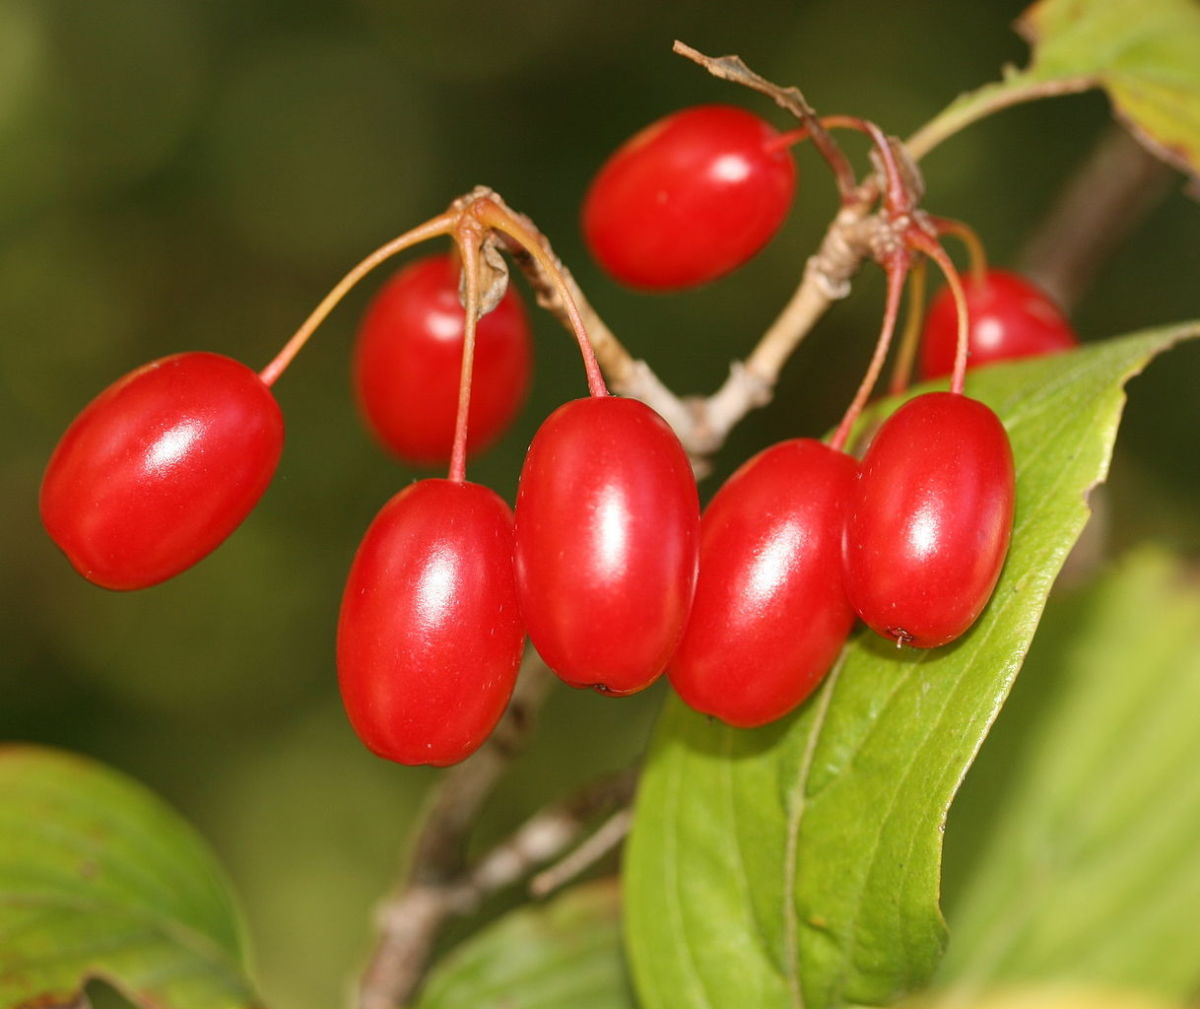 Dogwood fruits